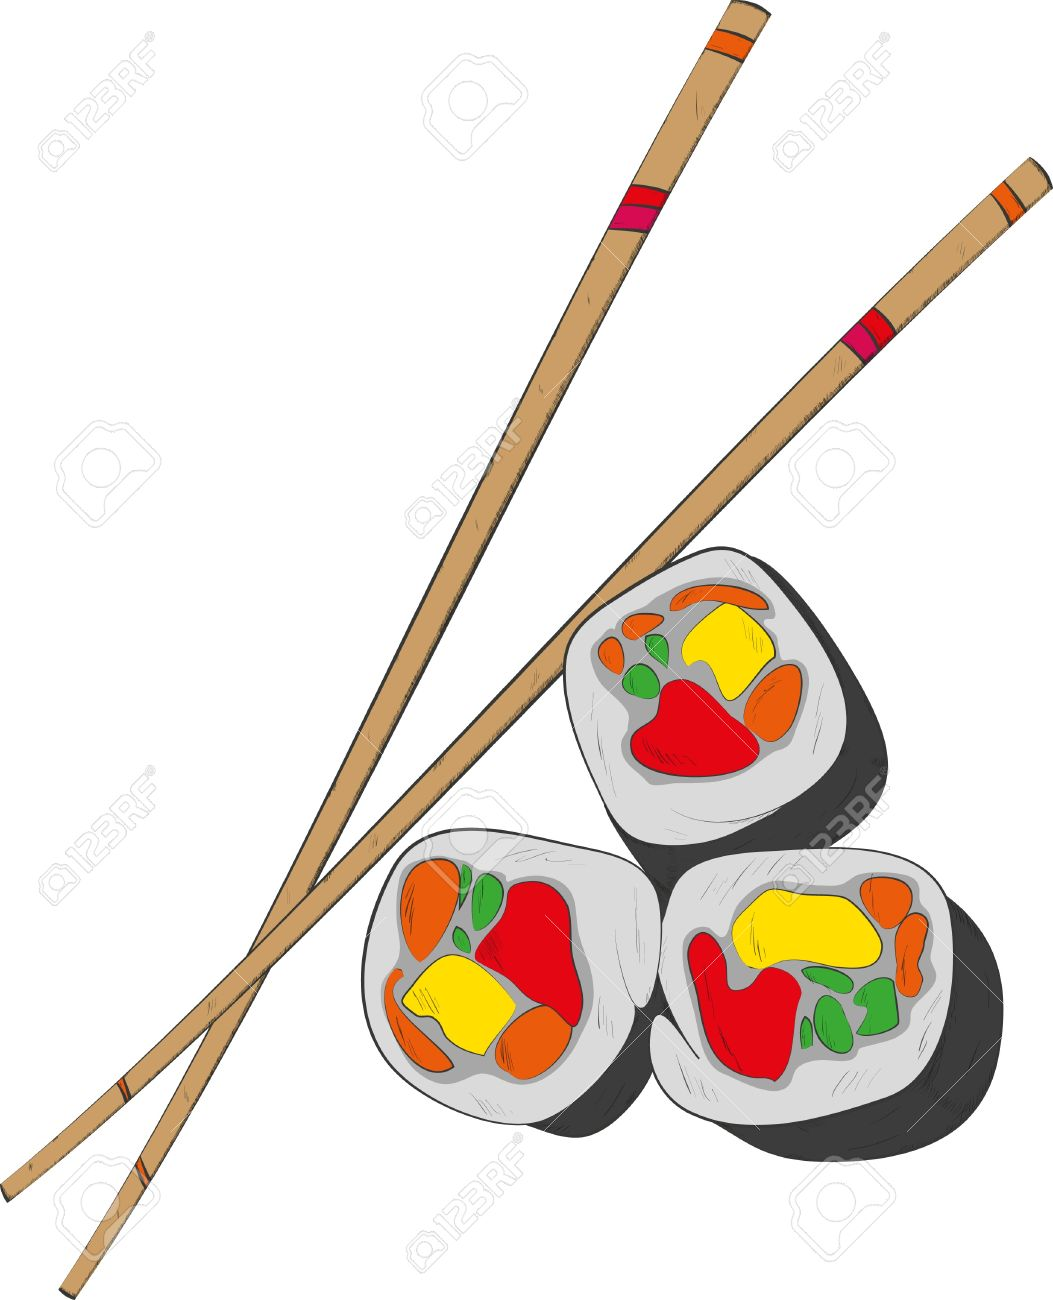 Sushi sticks clipart.